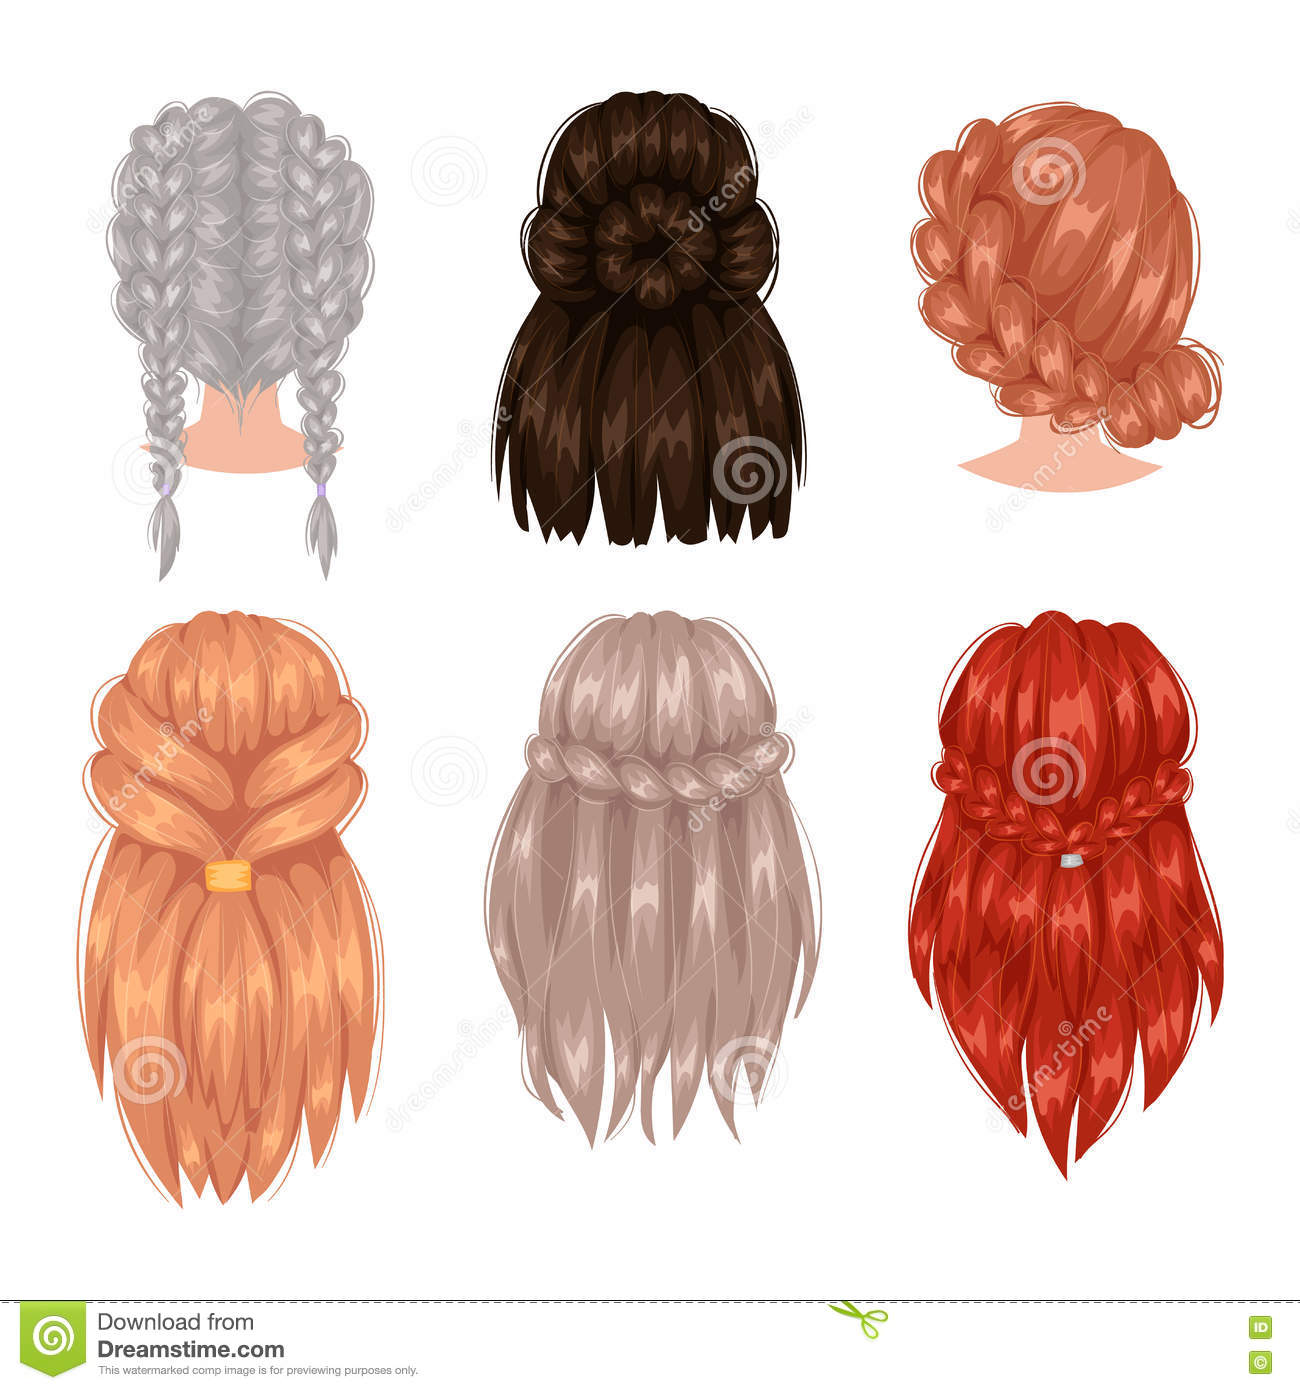 Vector Woman Hairstyle Back View Stock Vector Illustration Of Care Haircut 78066997